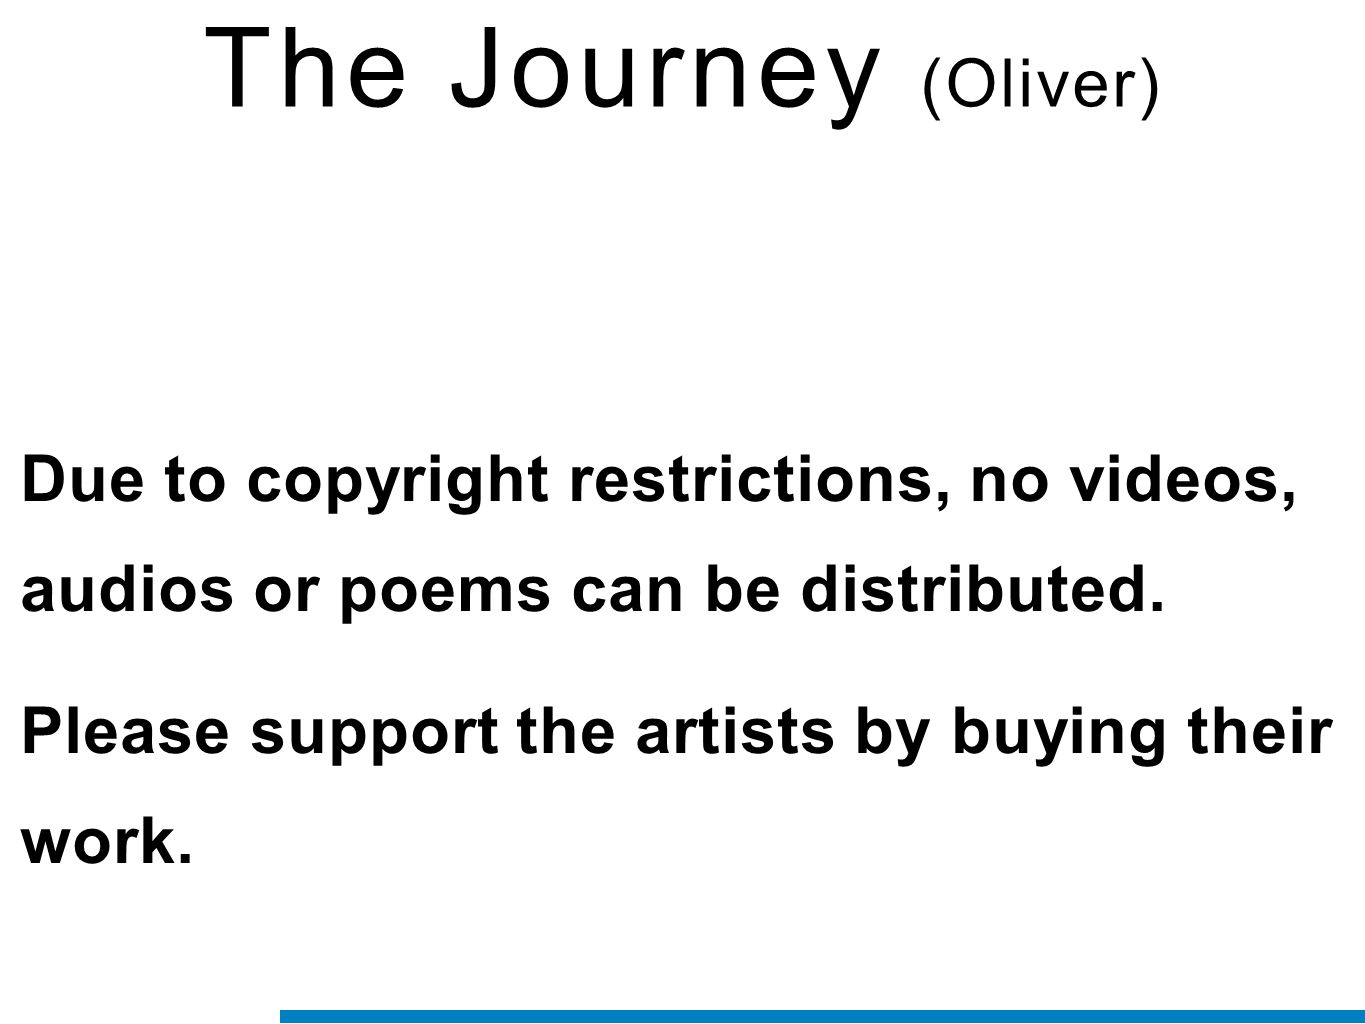 The Journey (Oliver) Due to copyright restrictions, no videos, audios or poems can be distributed. Please support the artists by buying their work.